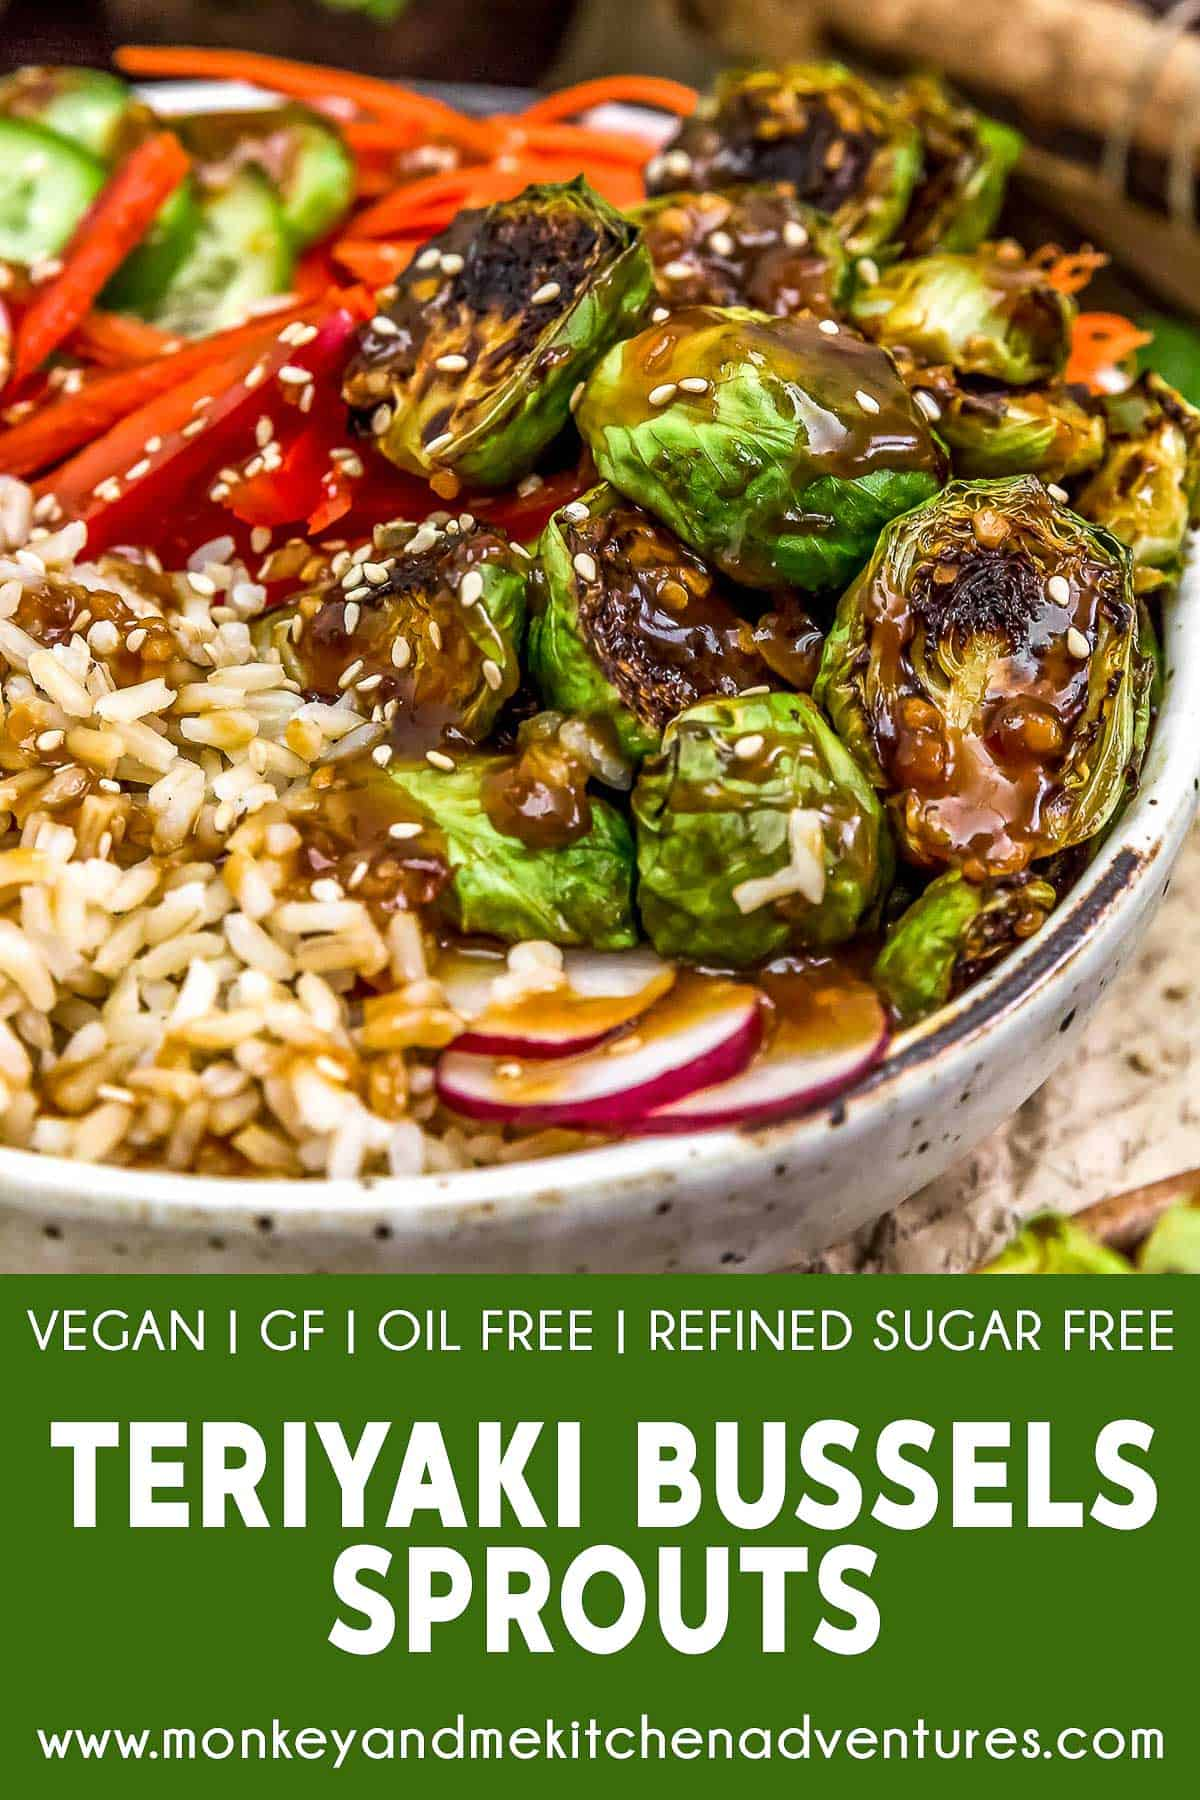 Teriyaki Brussels Sprouts with text description